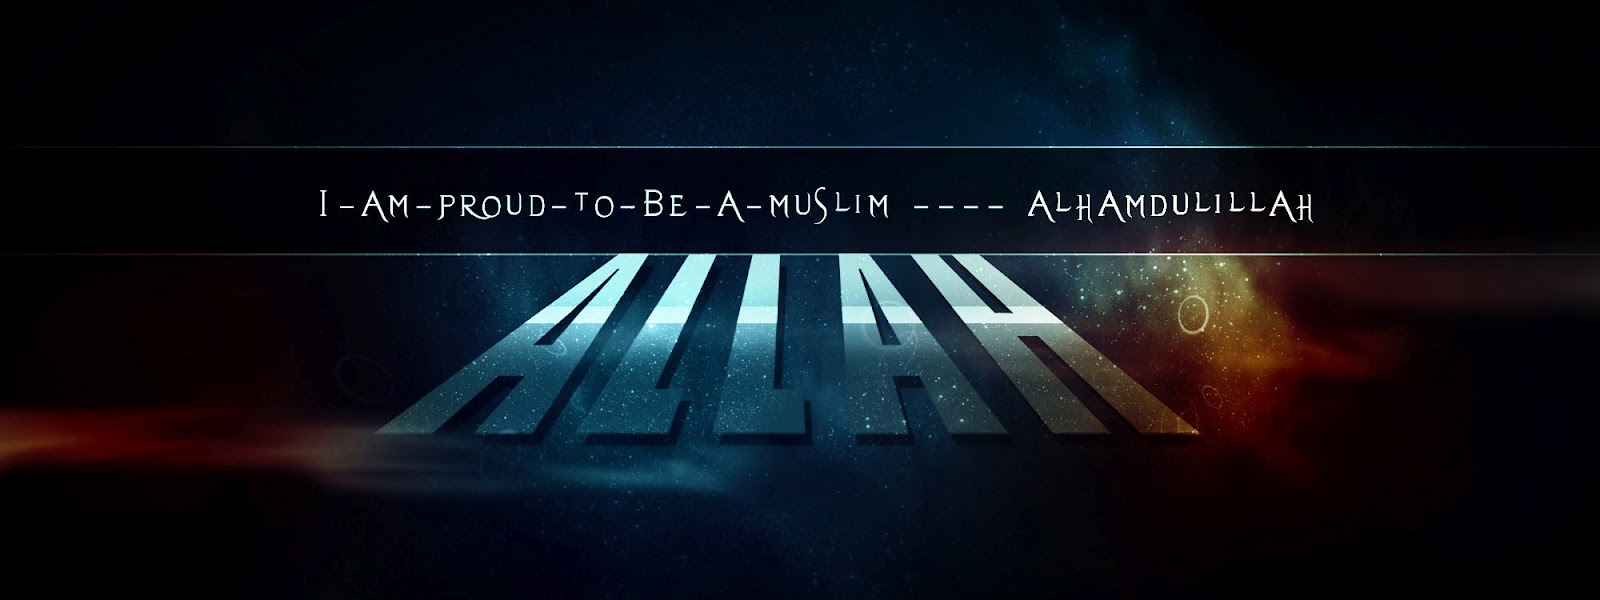 Facebook Covers: Islamic Facebook Covers